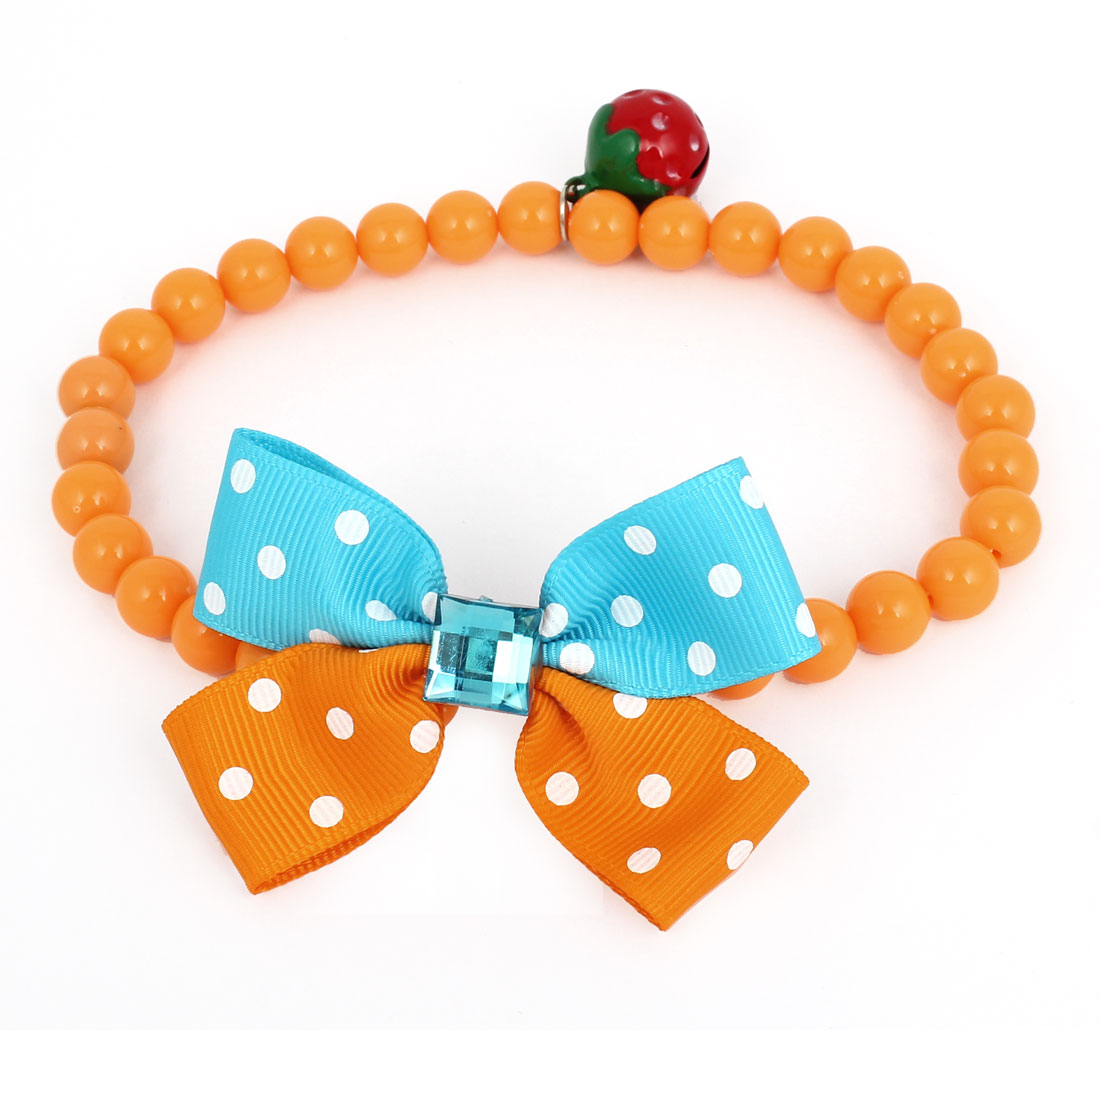 Metal Bell Pendant Bowtie Accent Pet Dog Plastic Round Beads Collar Necklace Orange Blue S